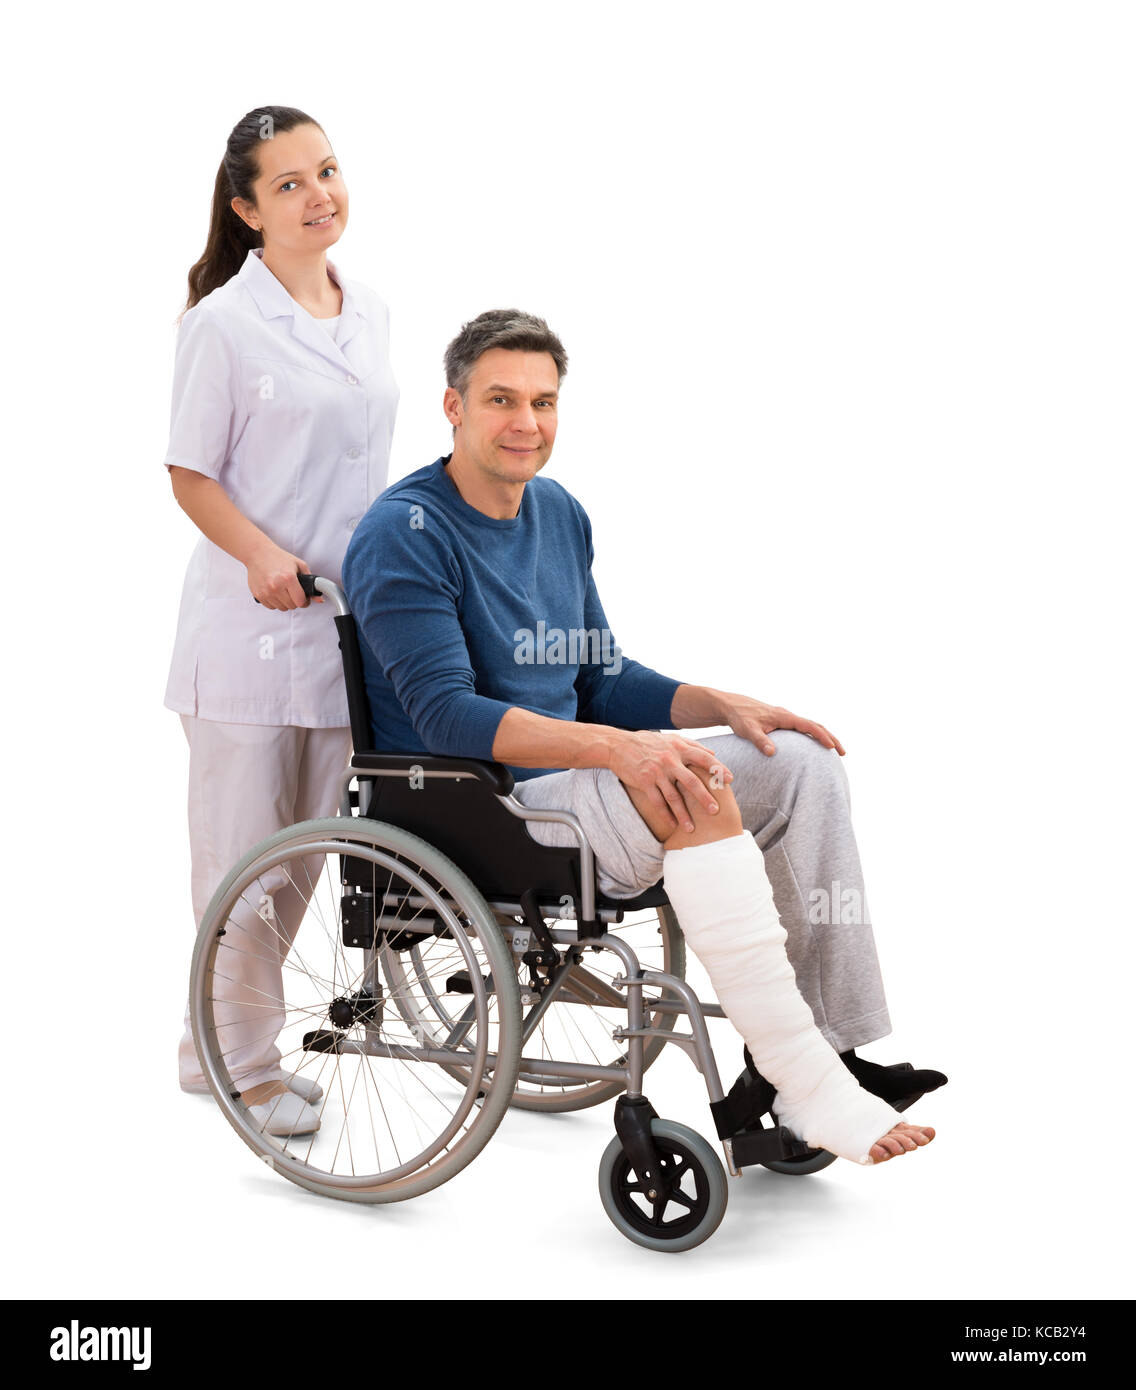 Portrait Of A Young Female Nurse With Disabled Male Patient On Wheelchair - Stock Image